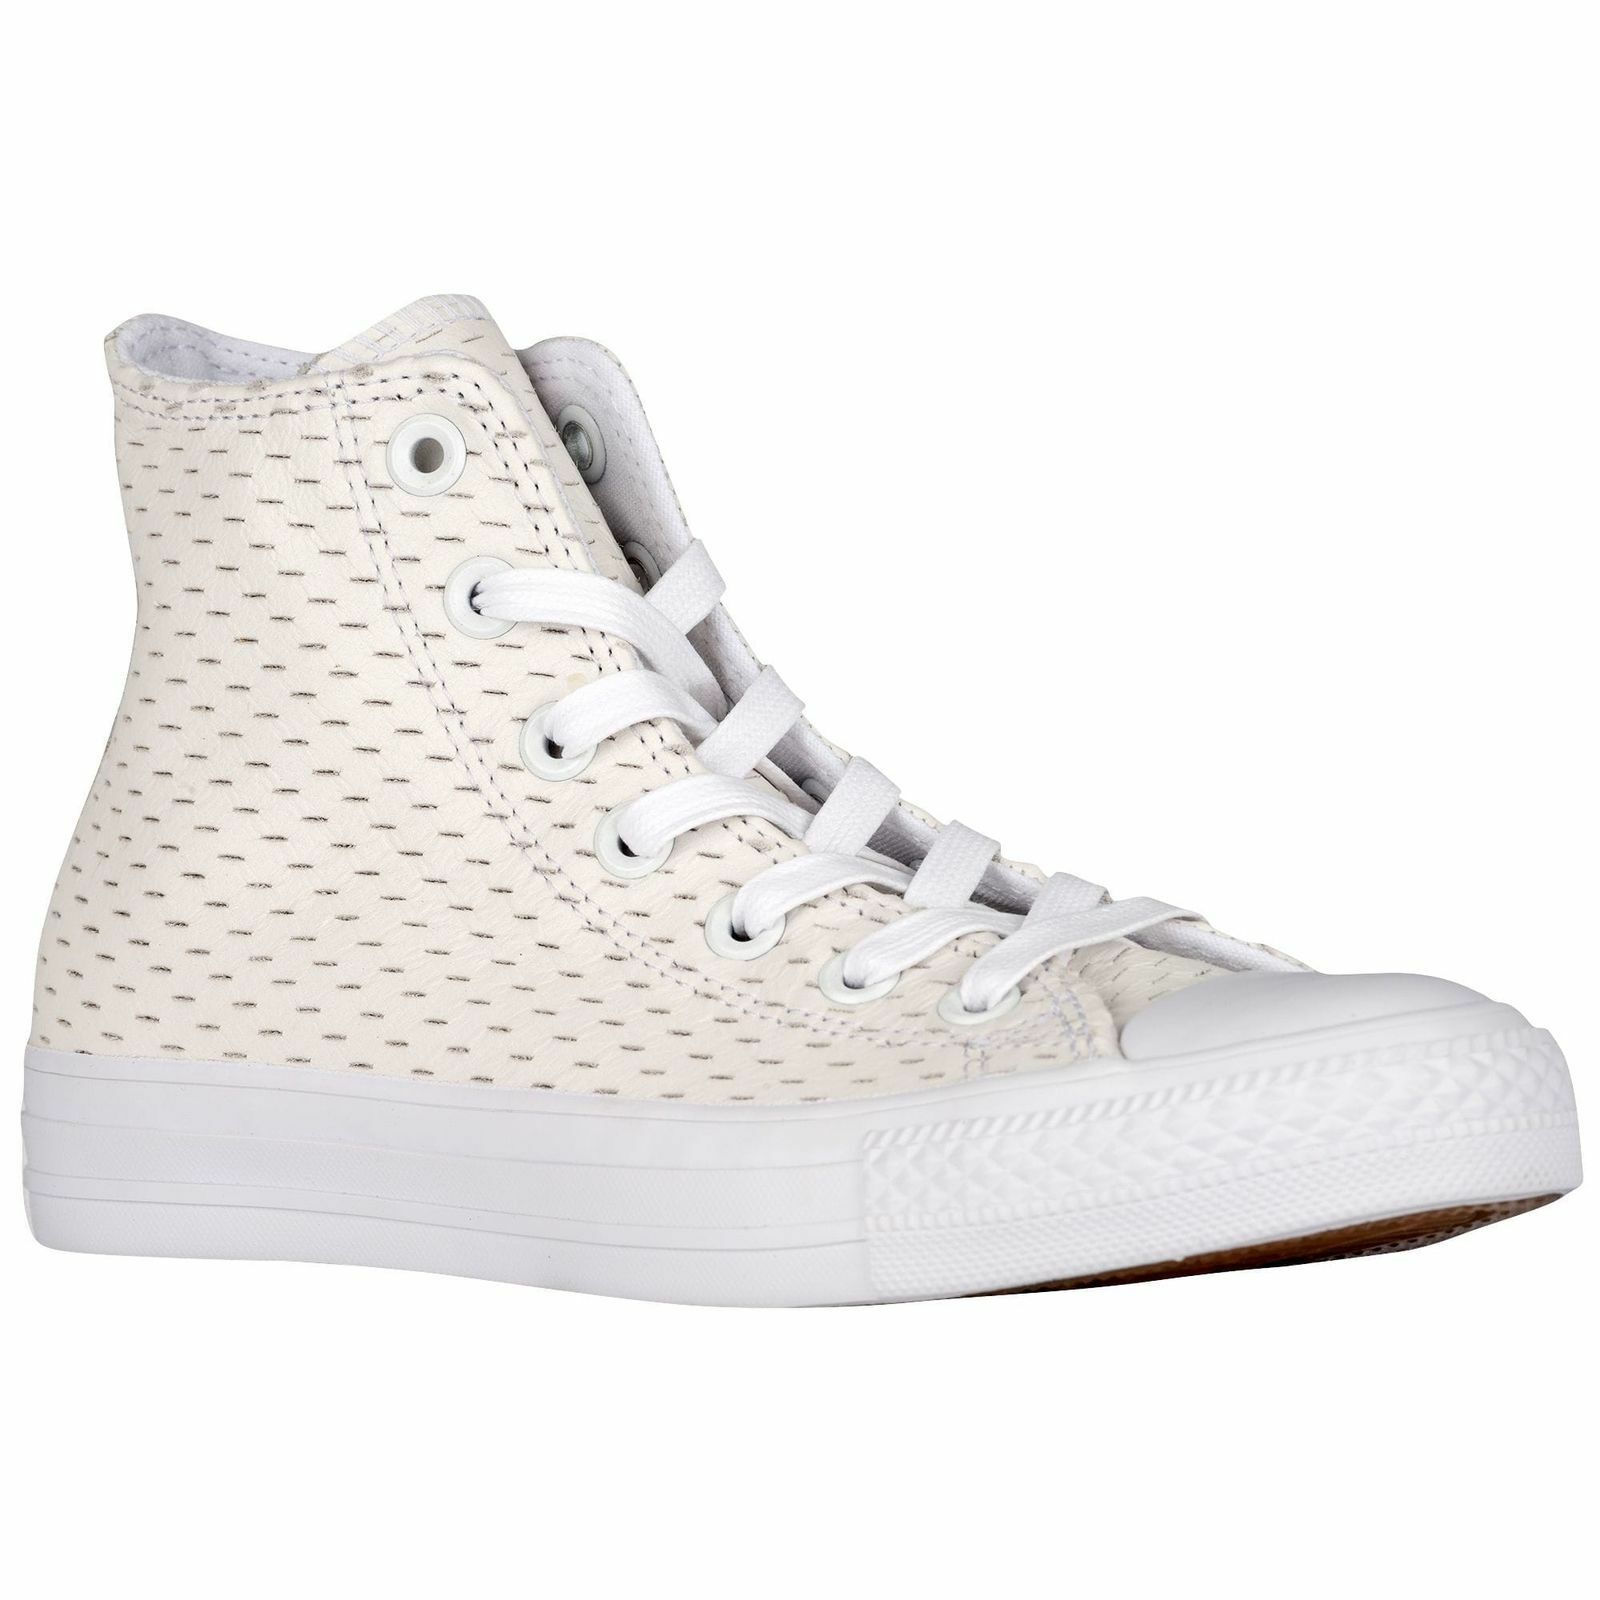 Converse All Star Leather High White Out Pack White/Gold 153115C Mens Shoe